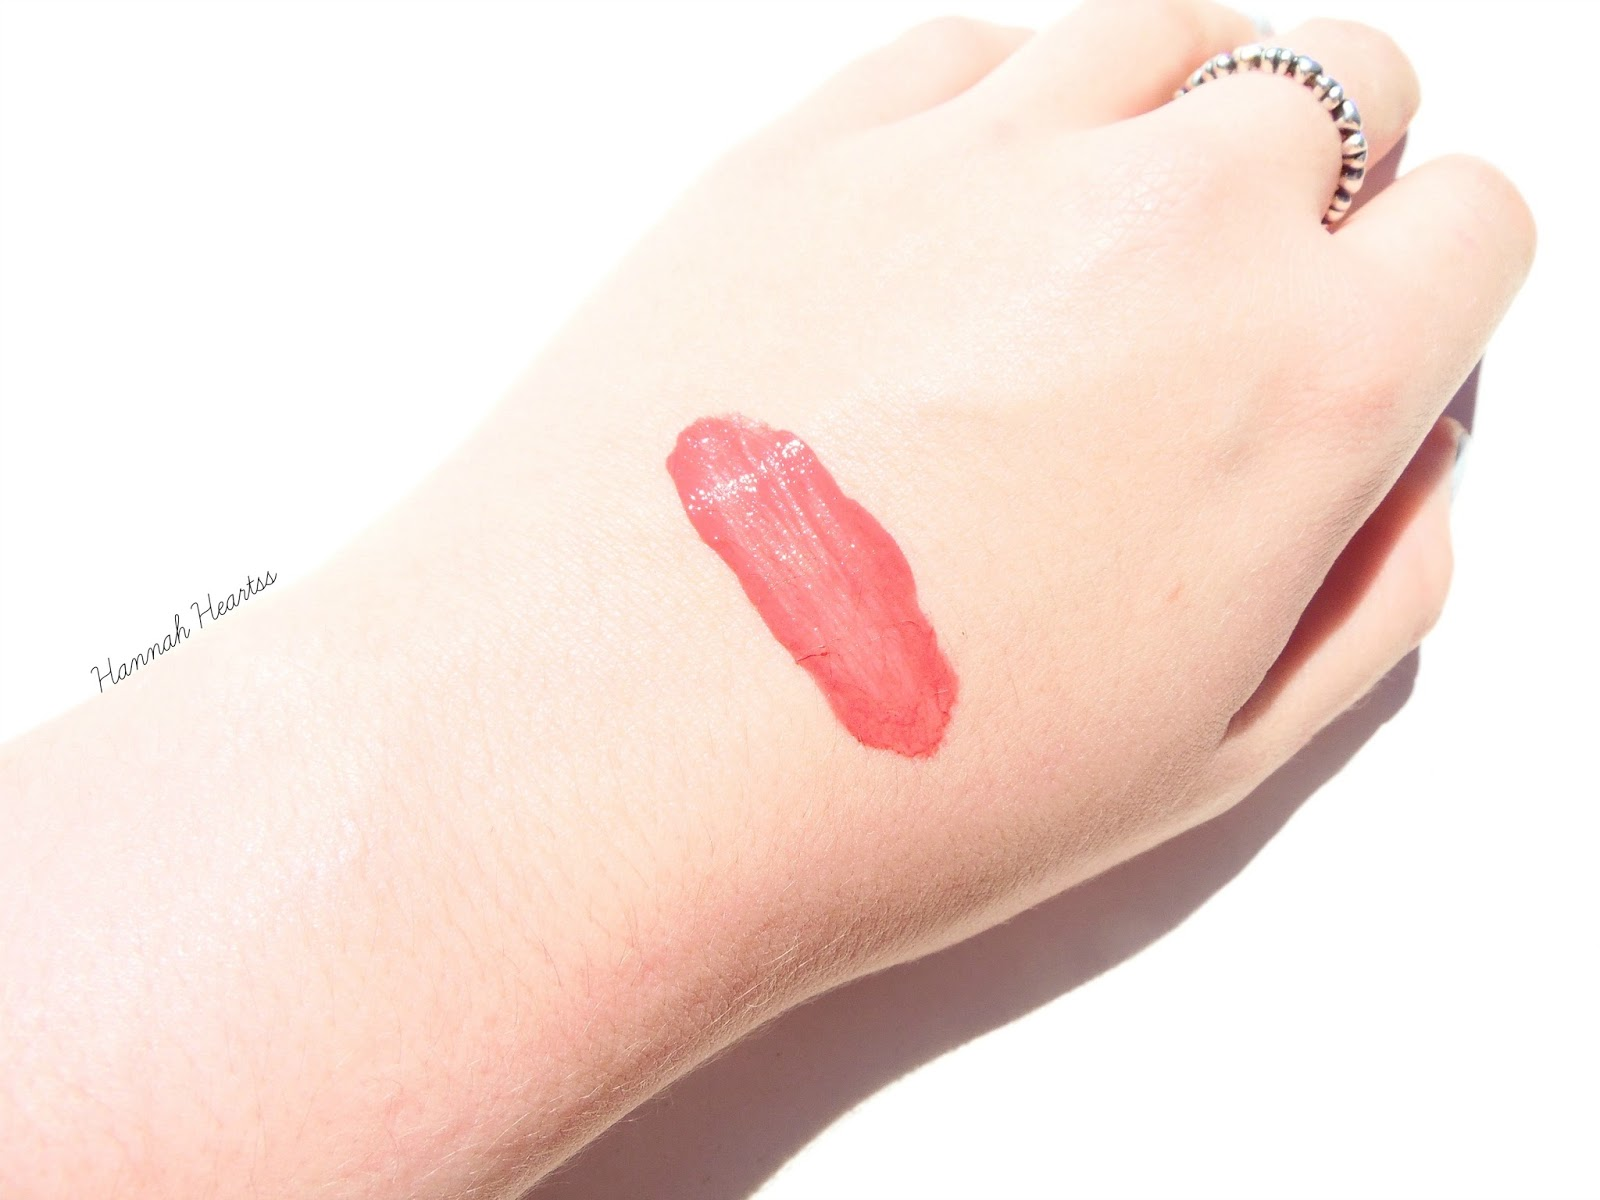 Becca Beach Tint in Watermelon Swatch